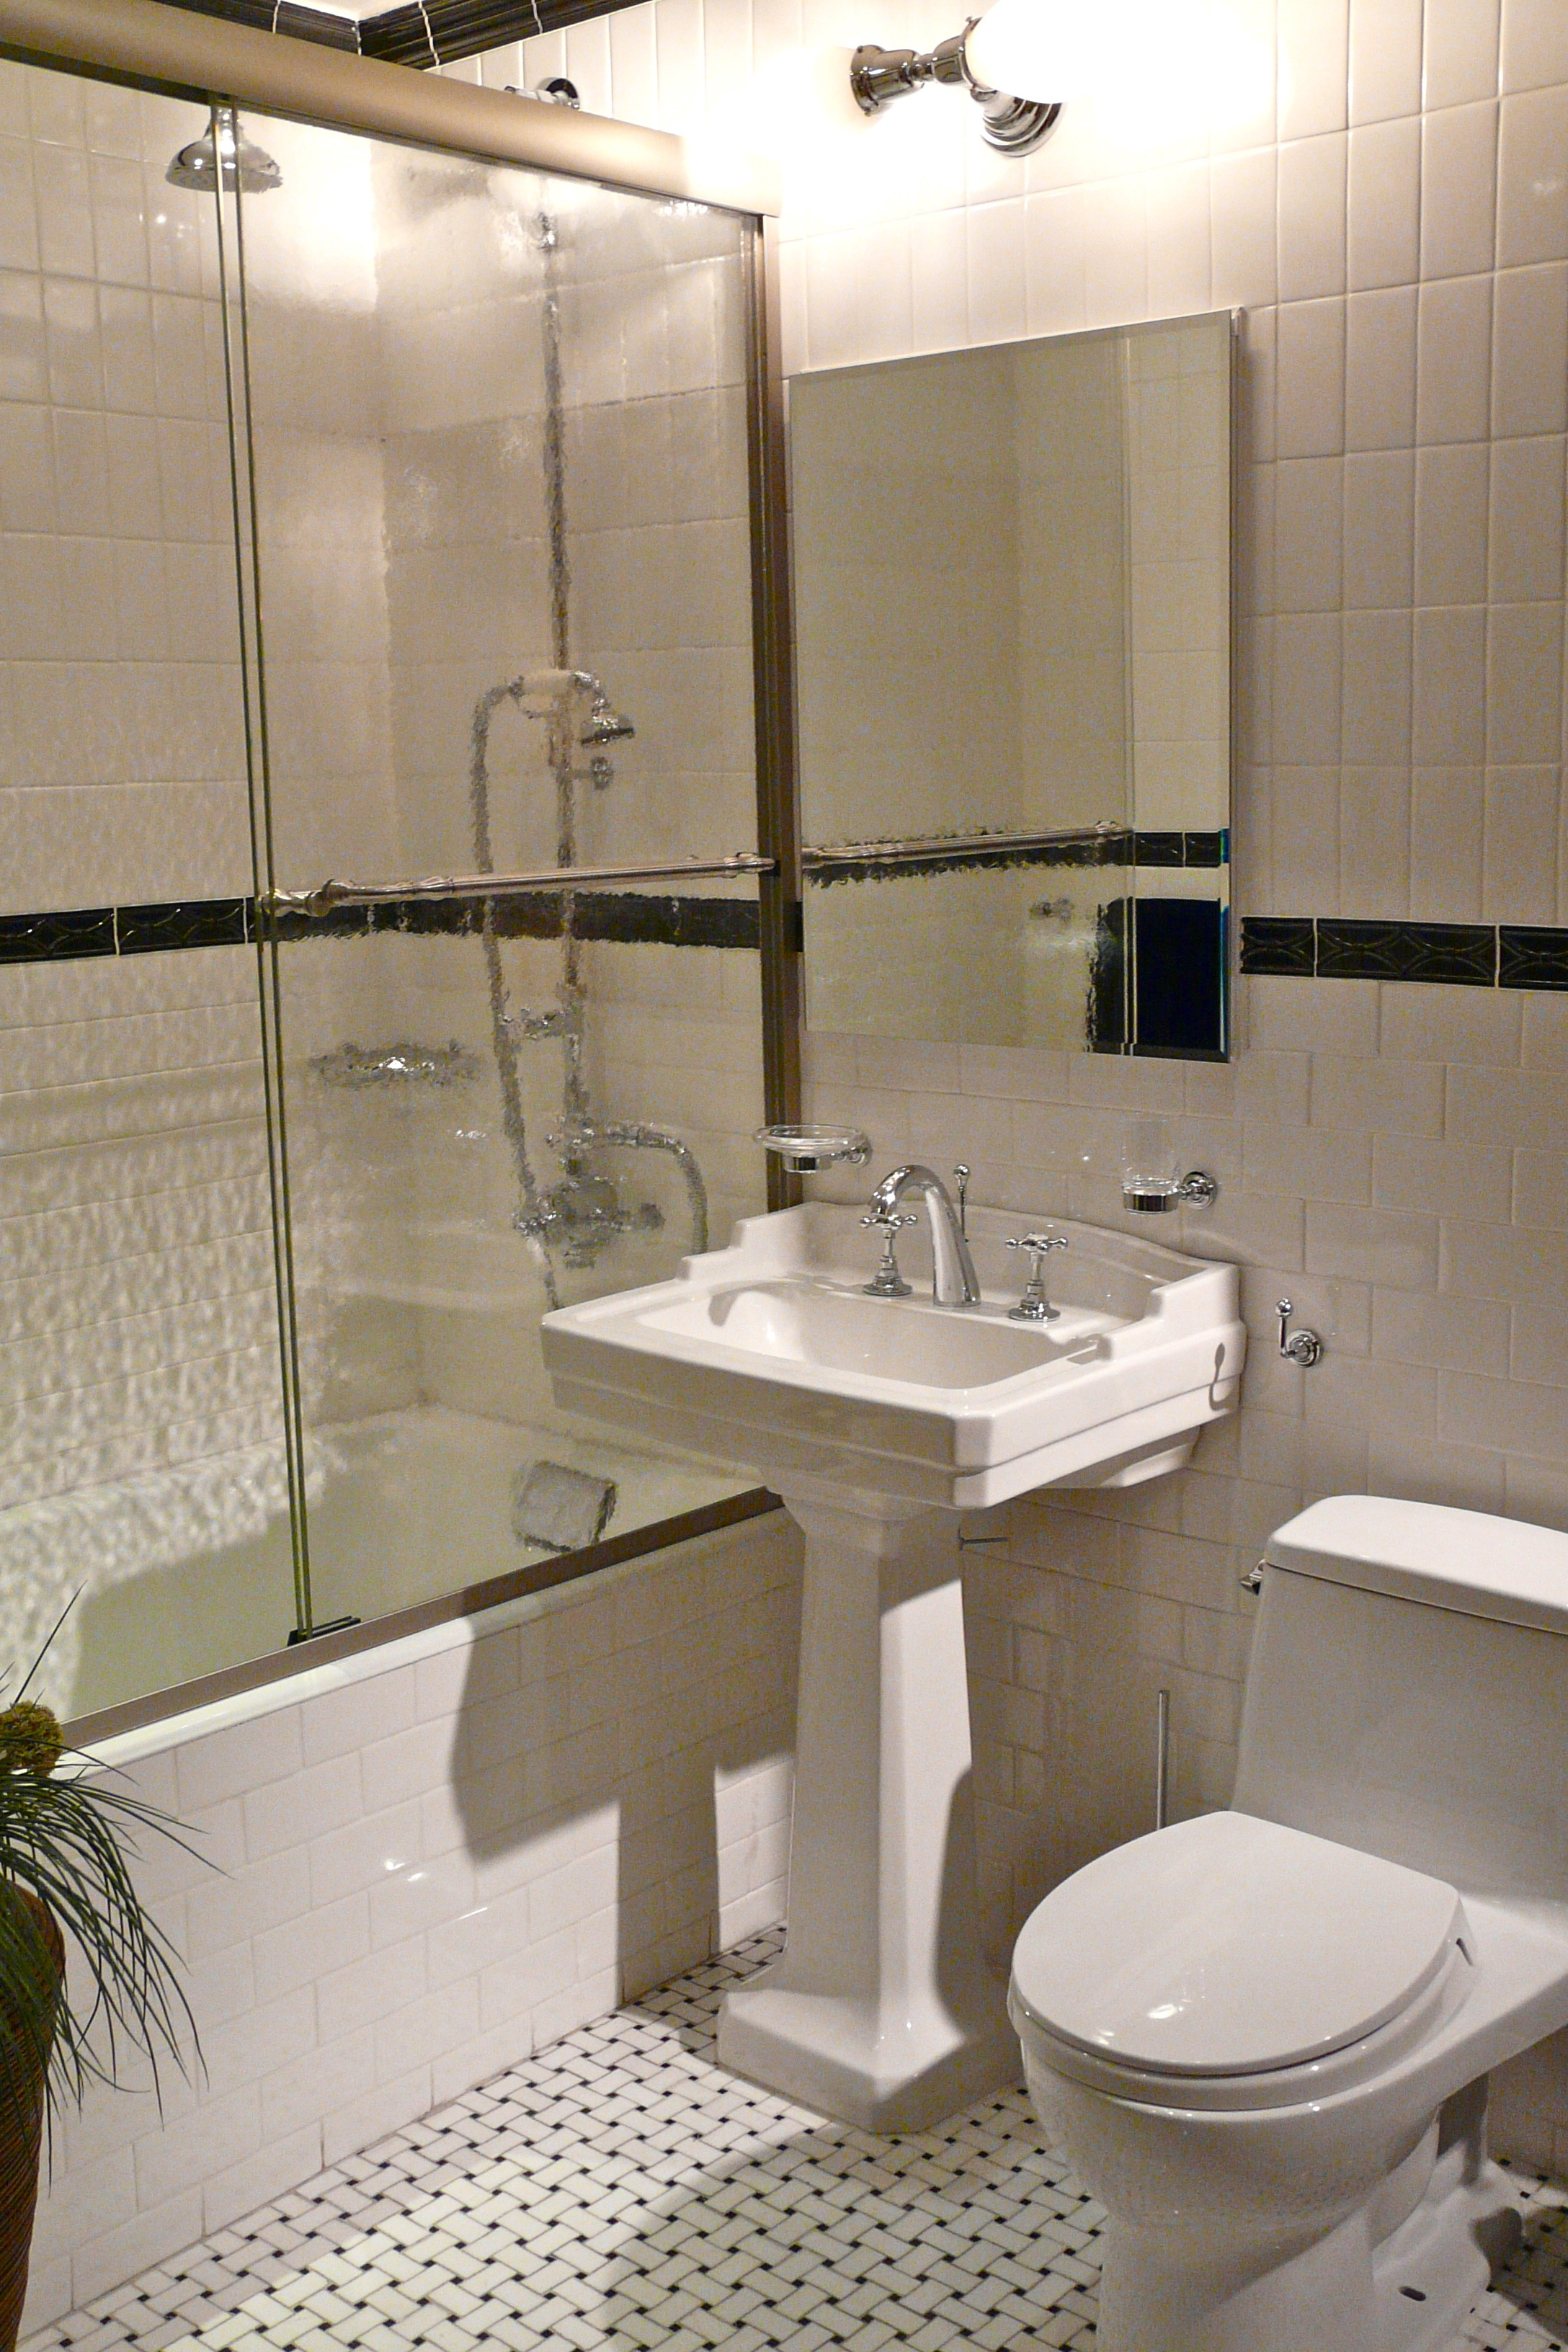 Bathroom designs home improvement for Images of bathroom designs for small bathrooms